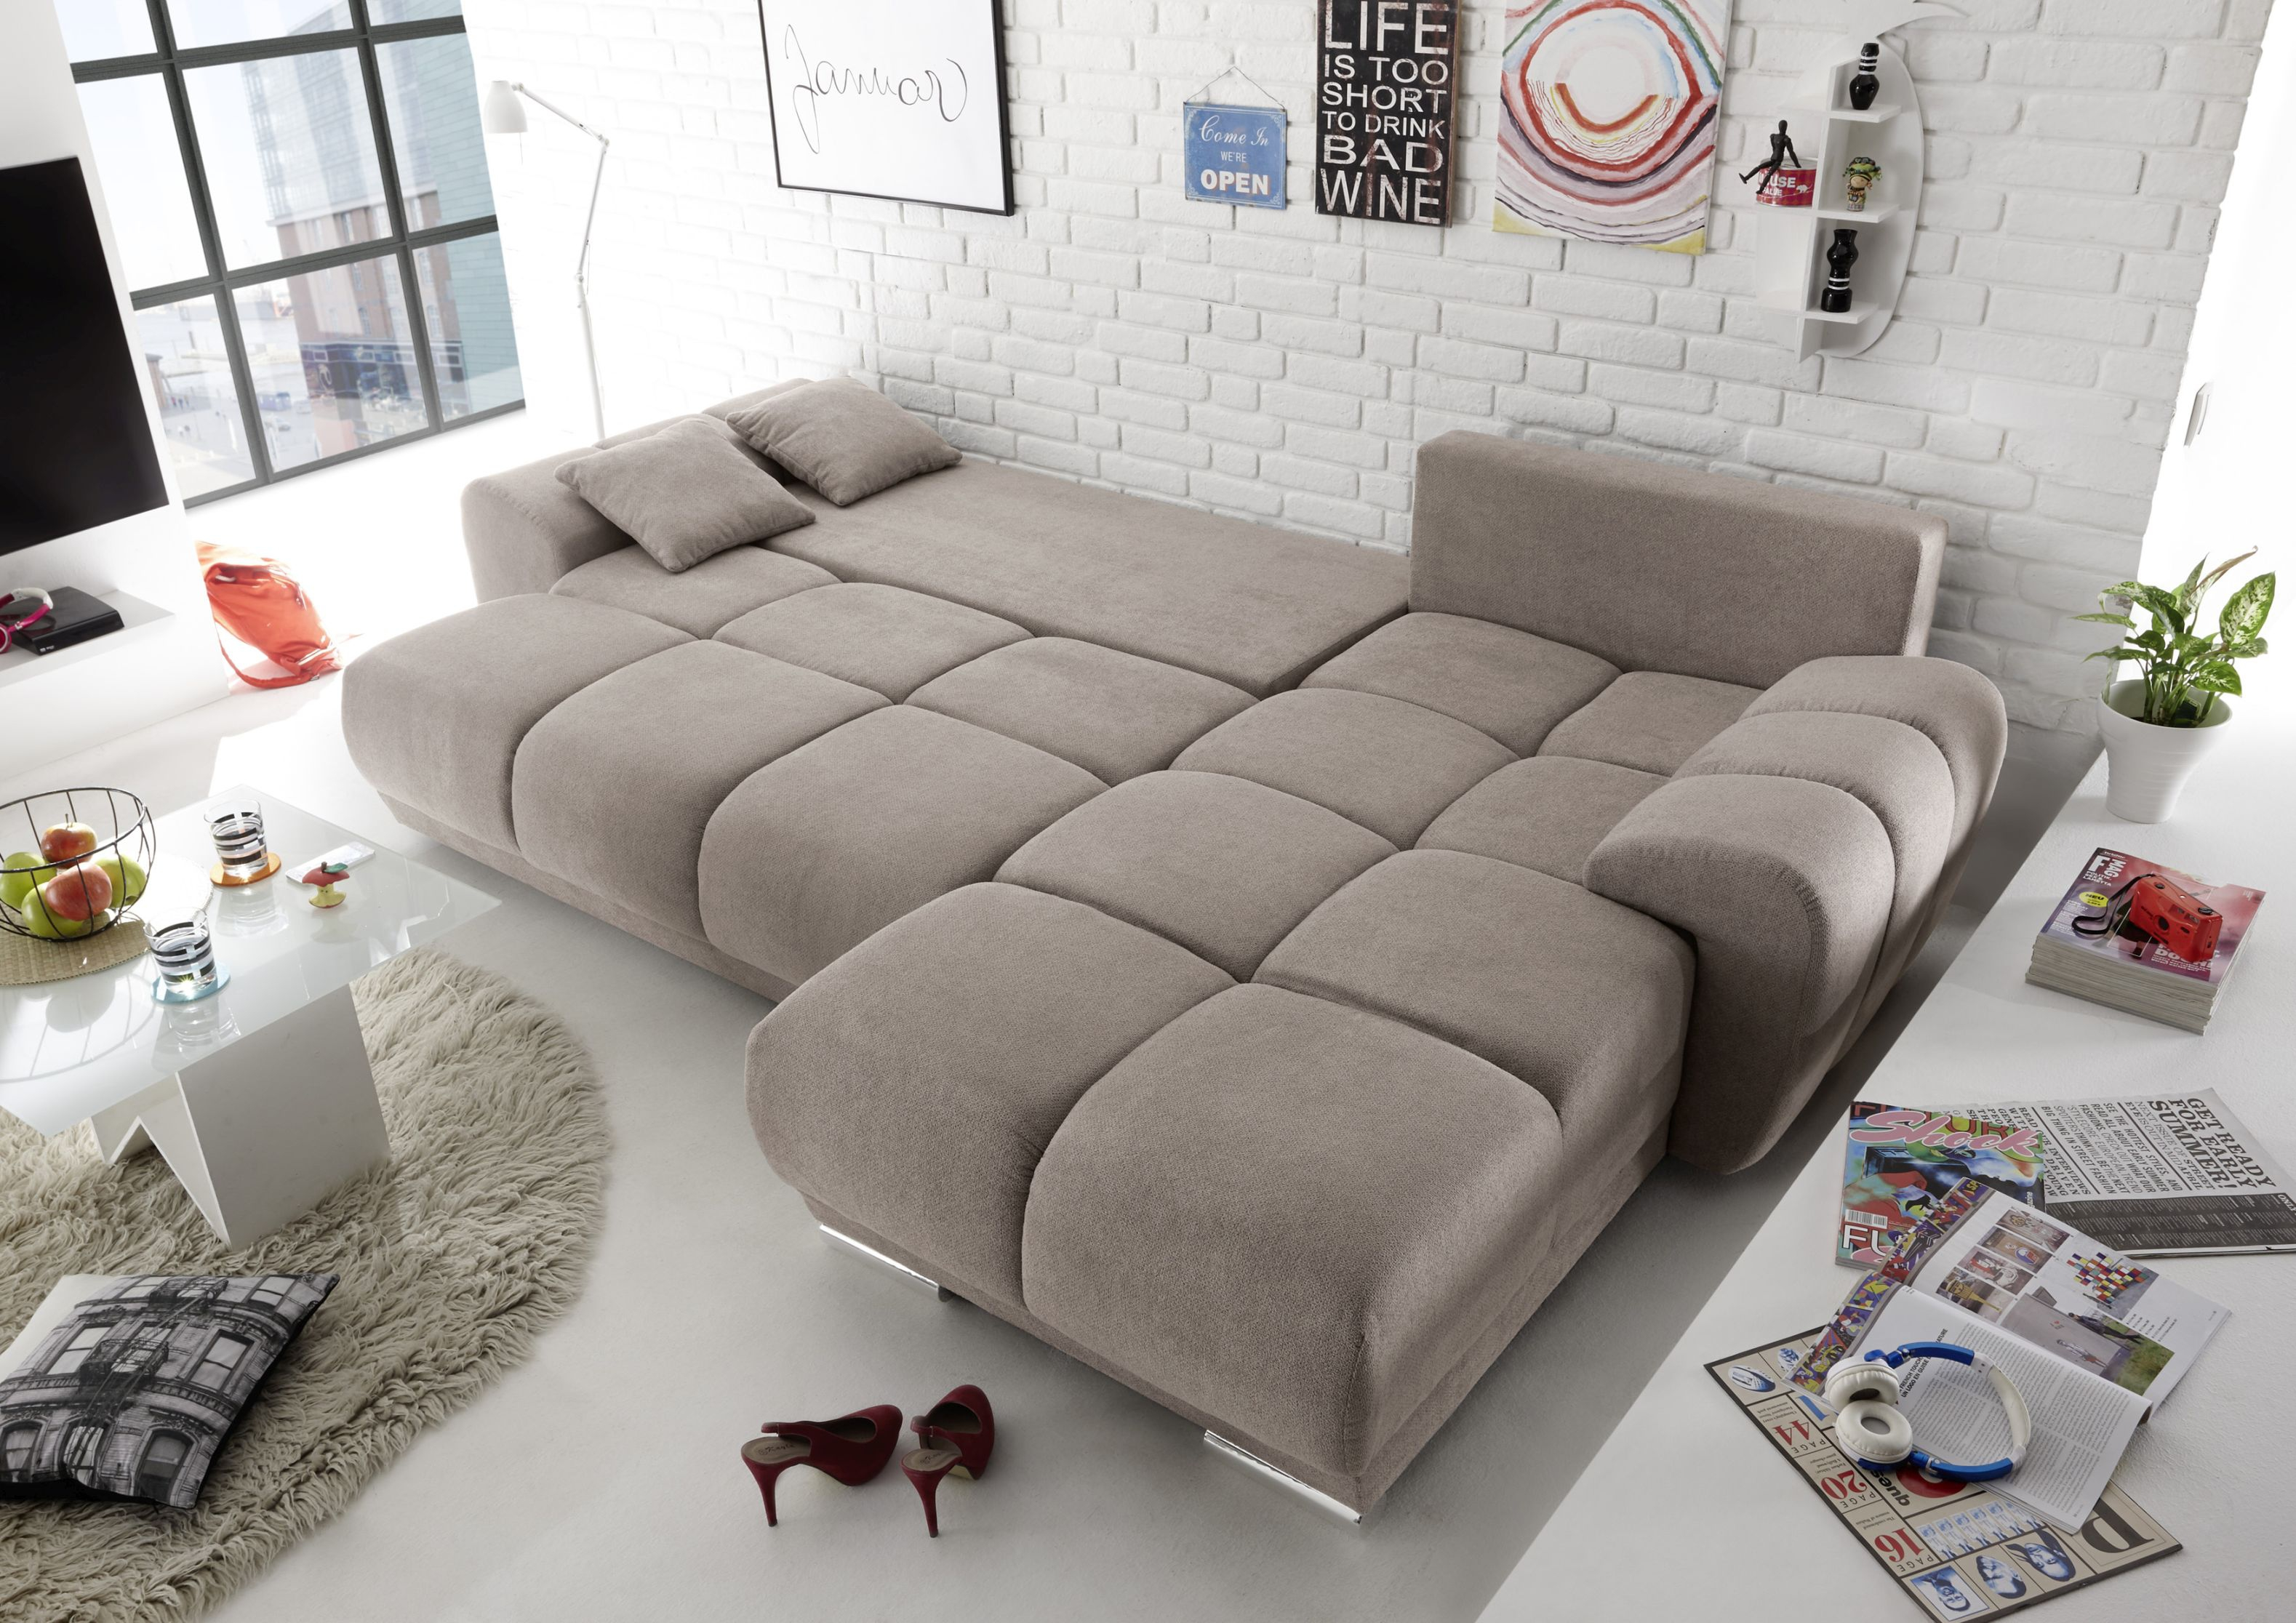 ecksofa couch schlafcouch schlafsofa funktionssofa ausziehbar taupe 289 cm ebay. Black Bedroom Furniture Sets. Home Design Ideas